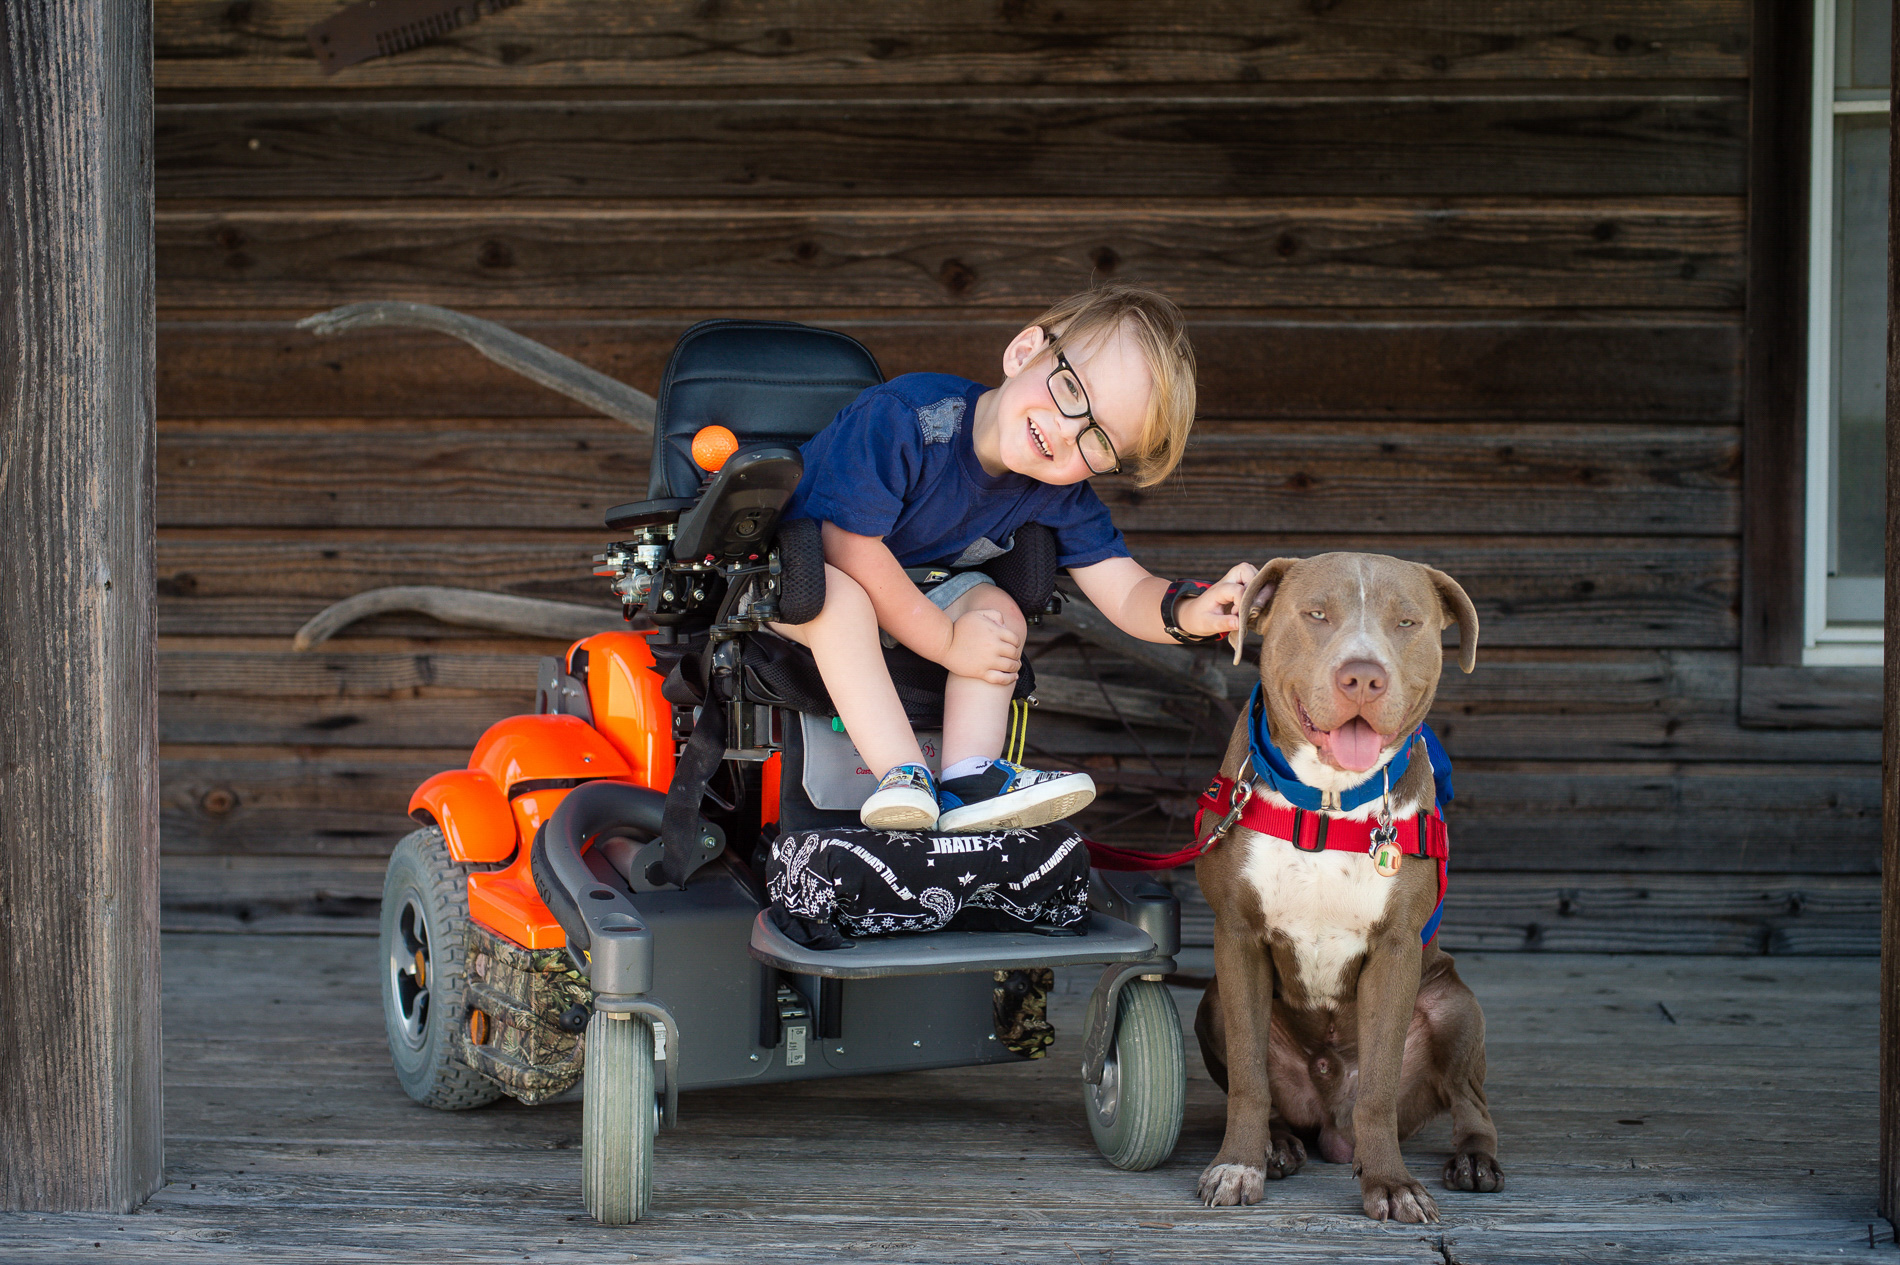 Able and his Dog